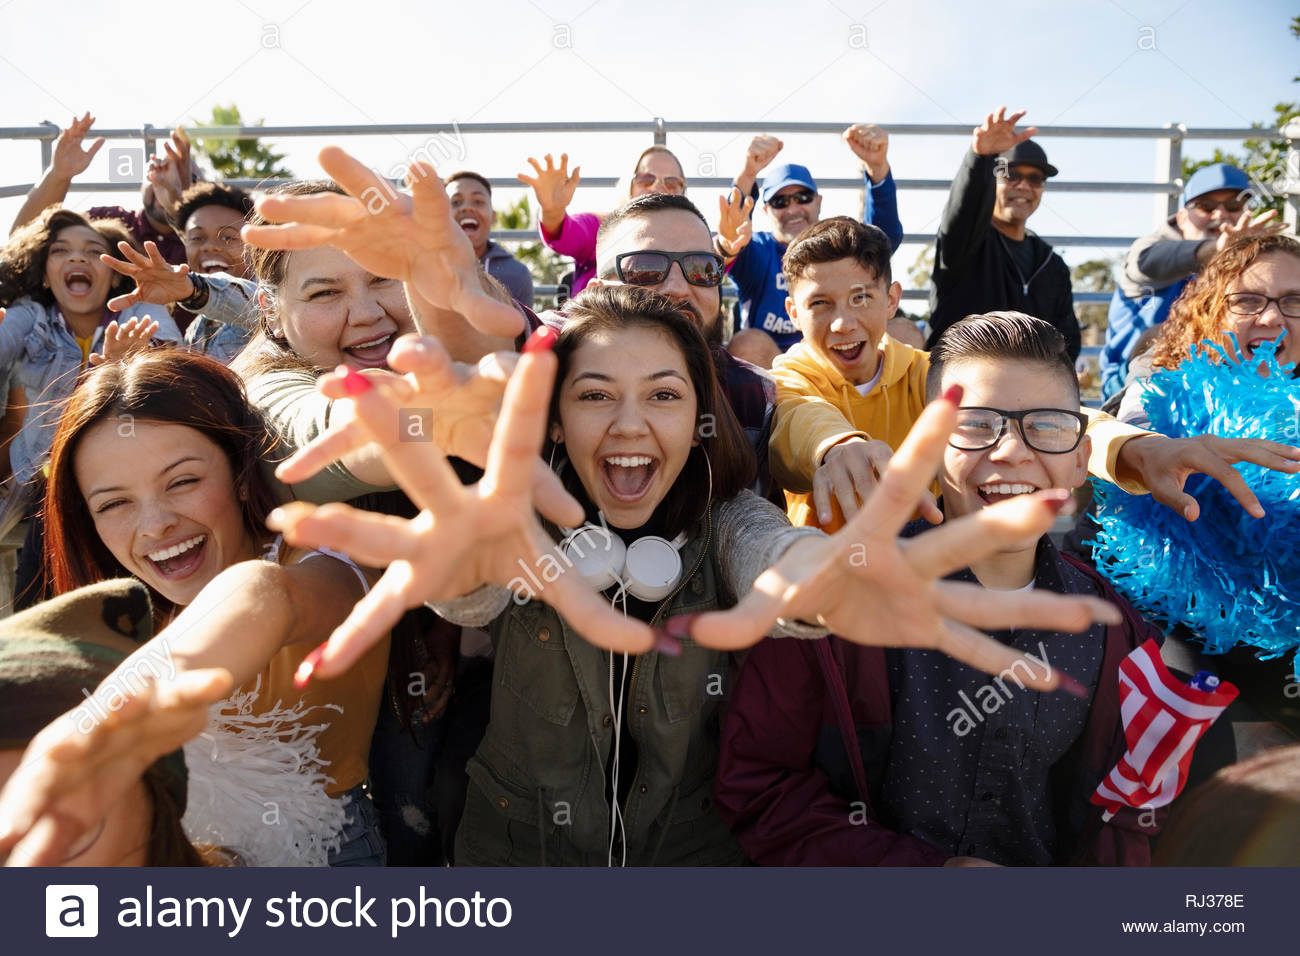 Excited fans cheering from bleachers at baseball game - Stock Image